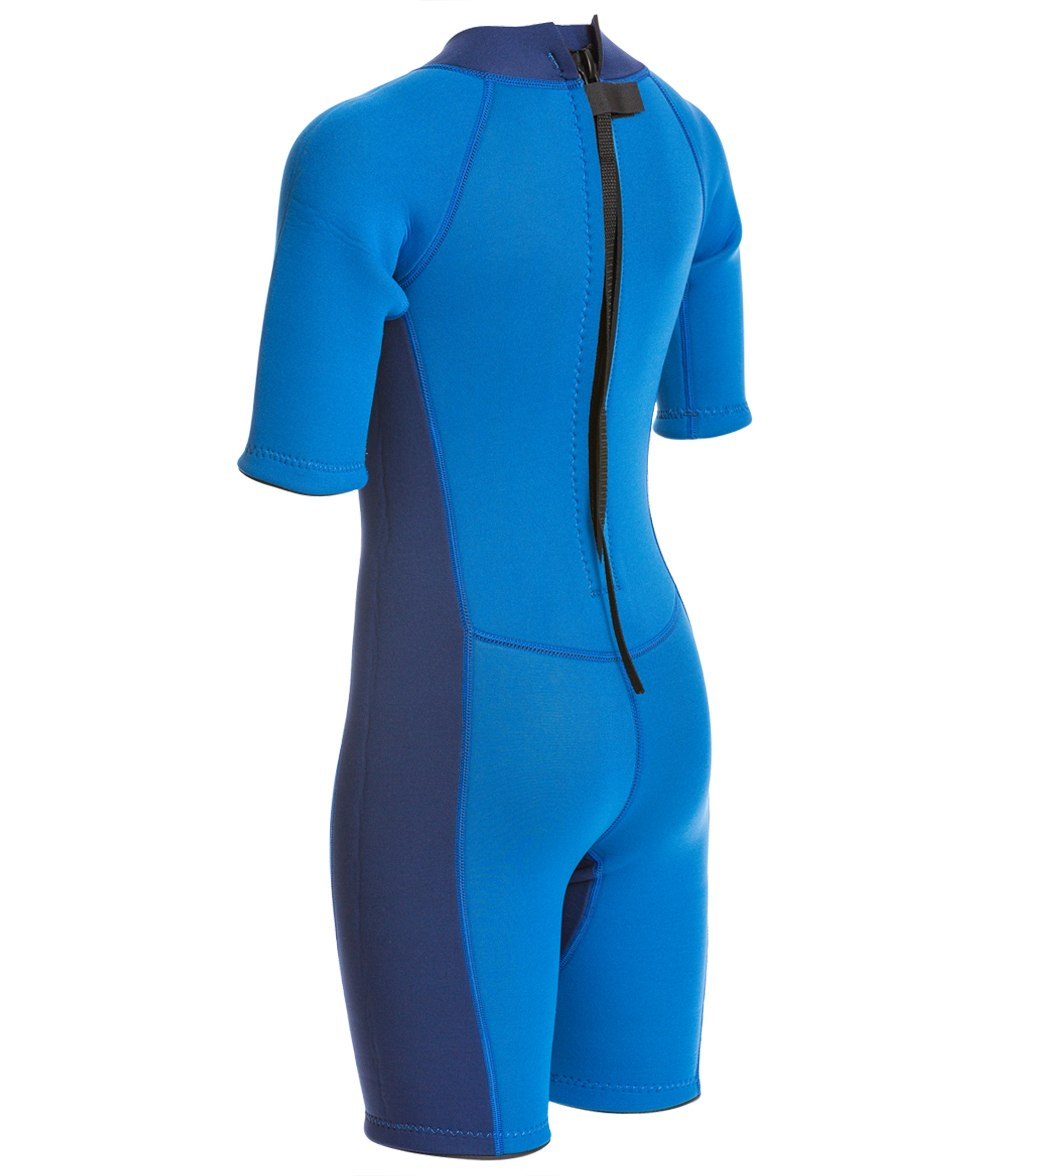 cc4d704f8d Konfidence Shorty Wetsuit at SwimOutlet.com - Free Shipping